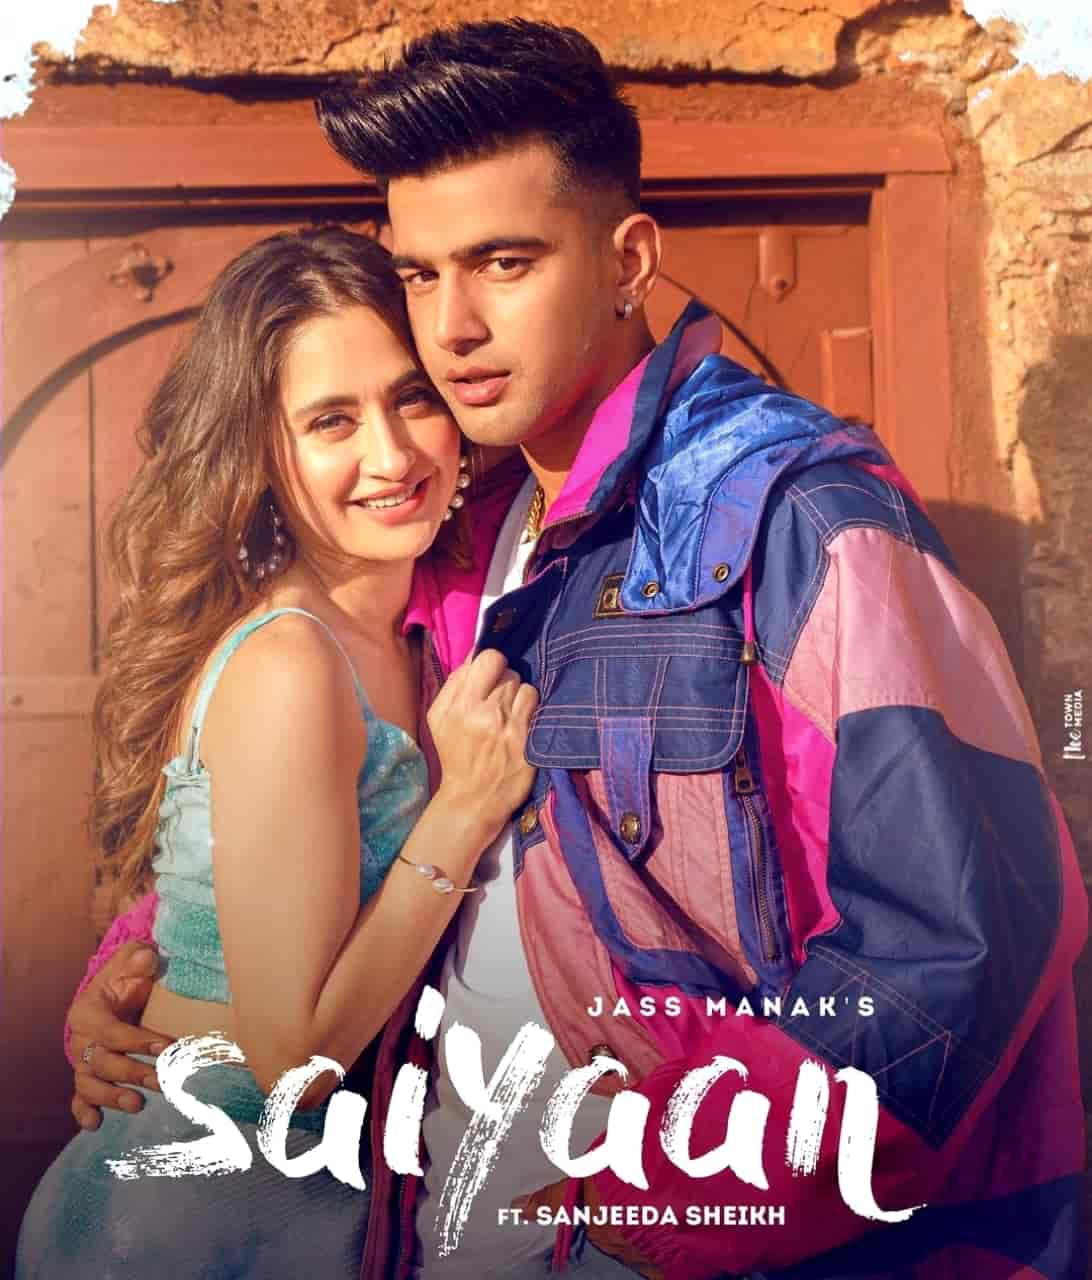 Saiyan Punjabi Song Image Features Jass Manak